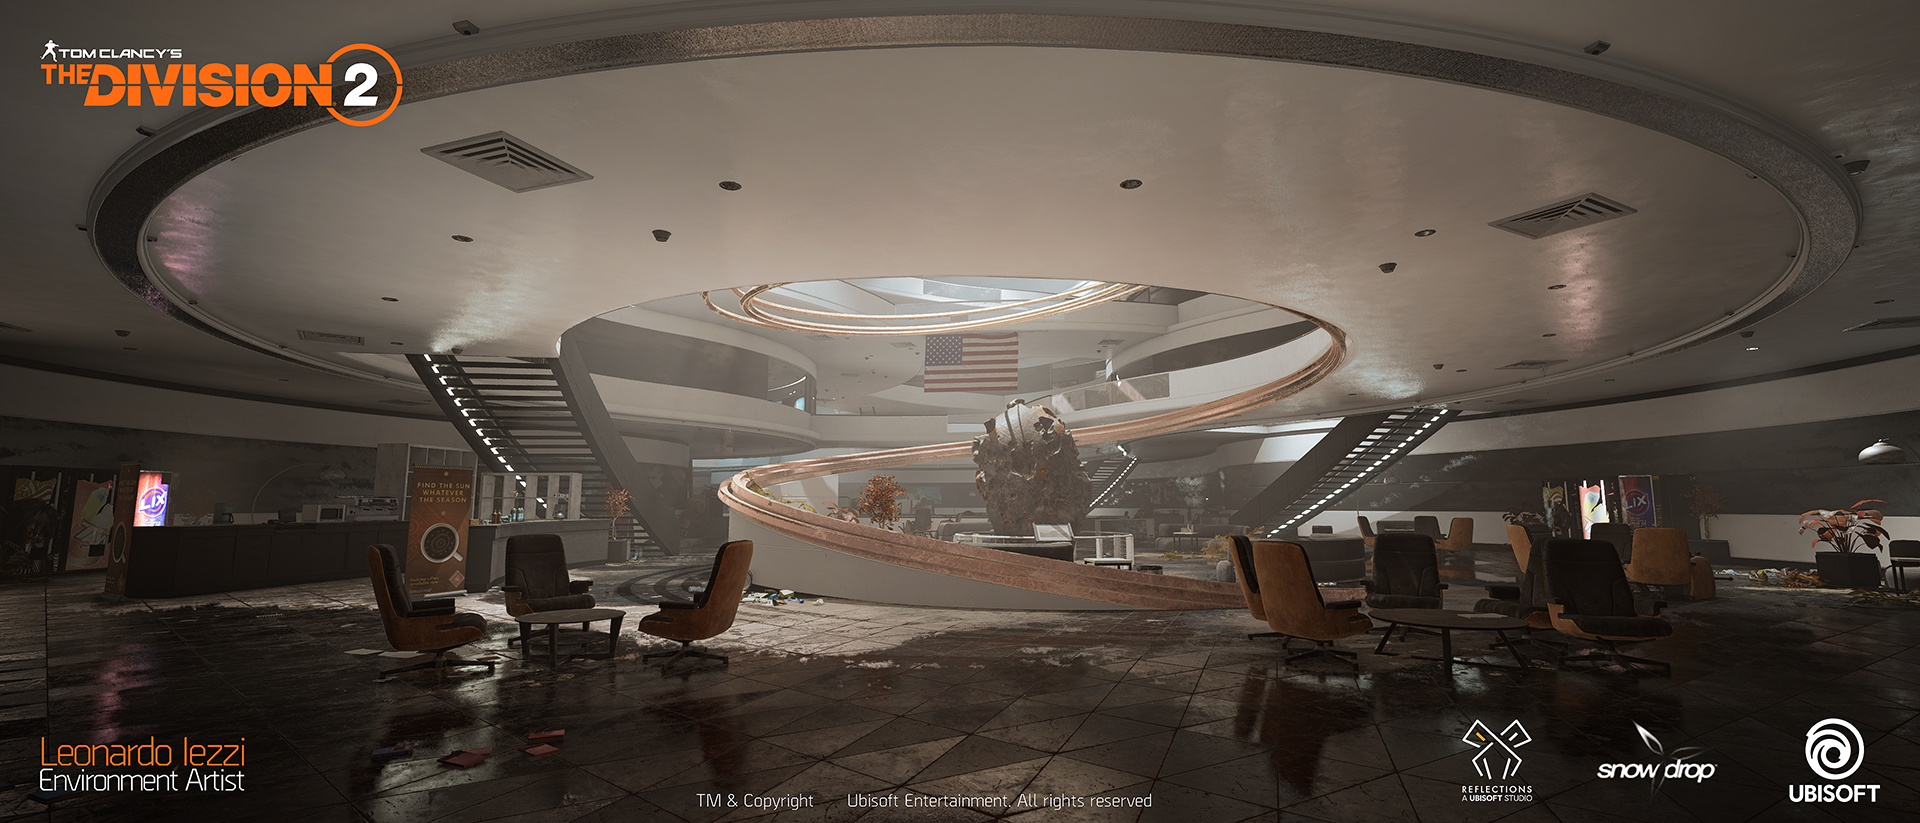 Leonardo_Iezzi_The_Division_2_Environment_Art_02_Atrium_025_wide